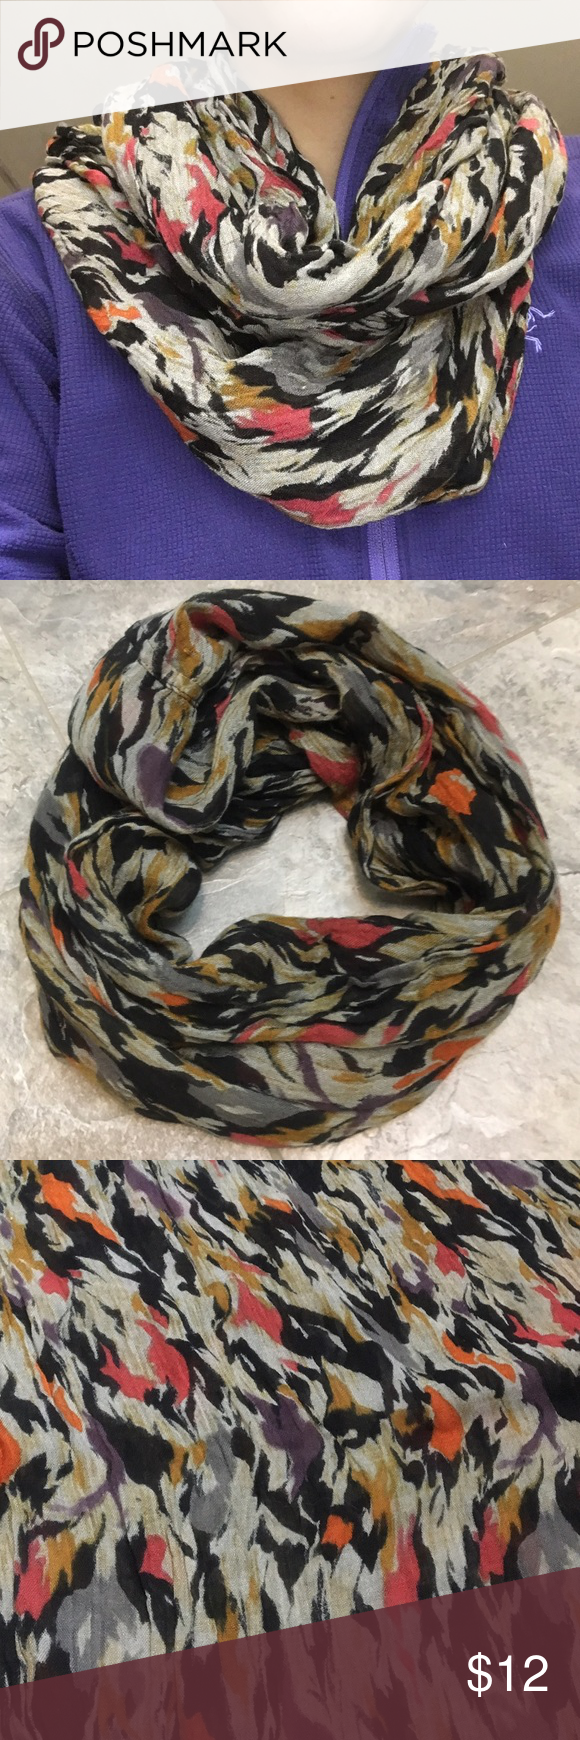 Infinity Scarf Beautiful printed infinity scarf. 100% viscose. Colors are black and gray with hints of purple, orange, and red. Goes with so many things! 🎀Bundle & Save! 3+ items=30% off!🎀 Accessories Scarves & Wraps